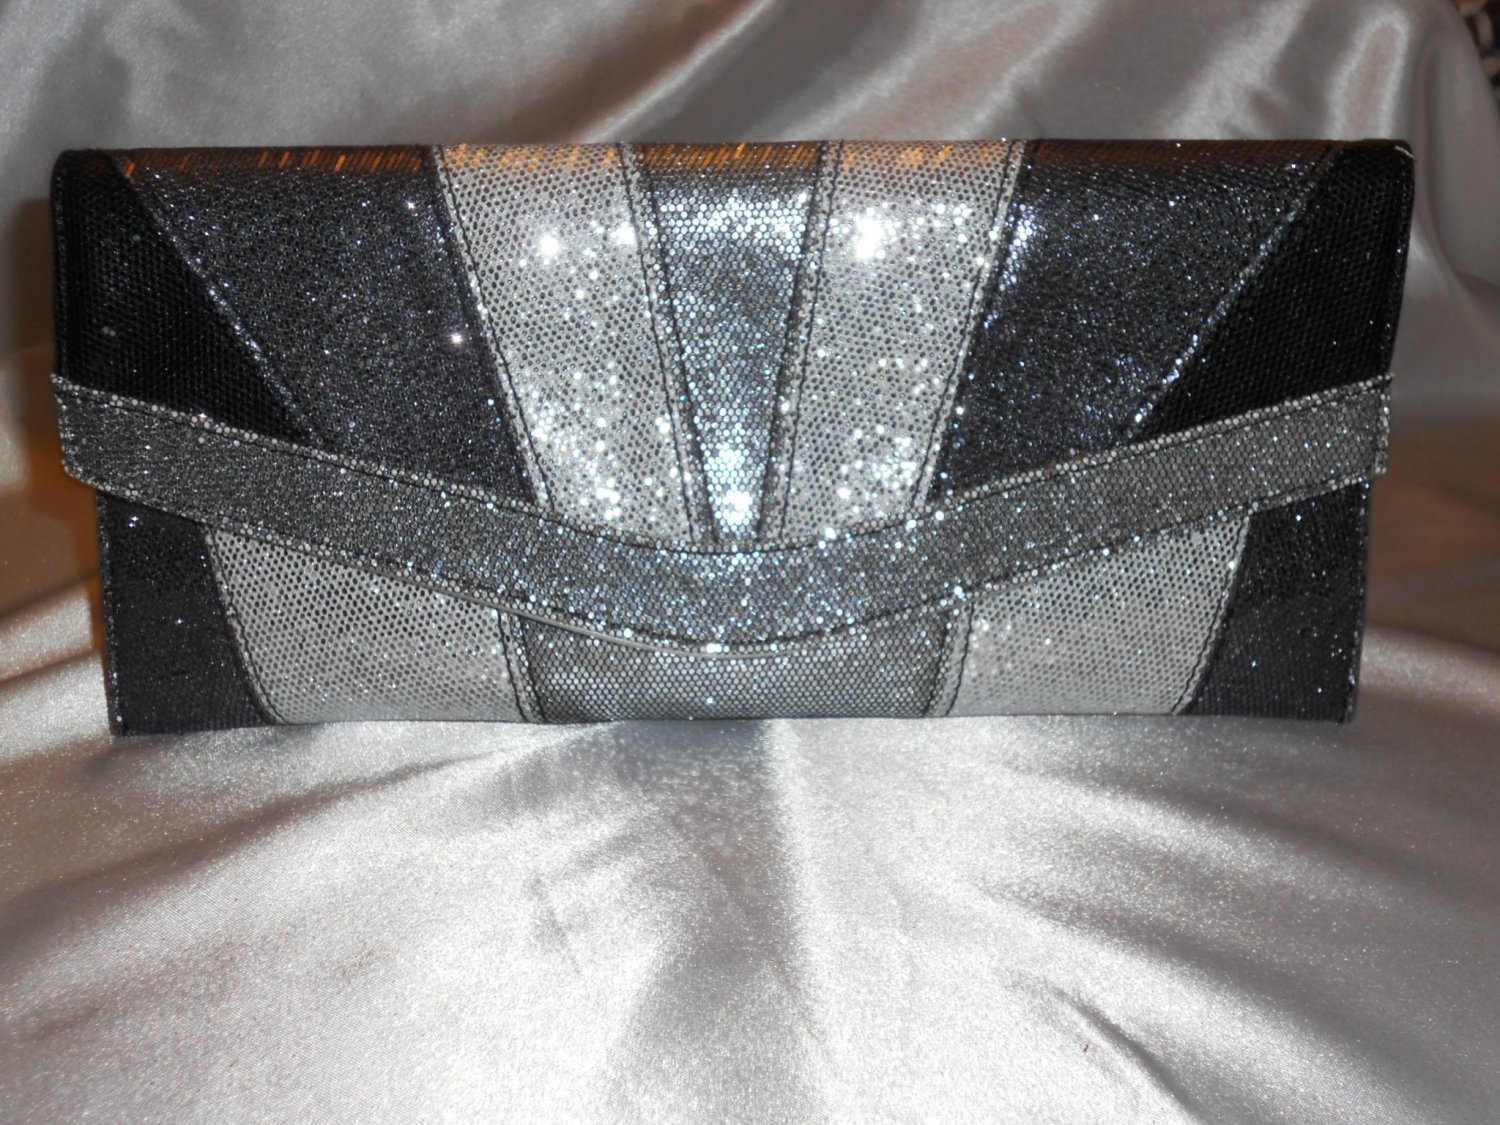 SILVER AND PEWTER TONE GLITTERY CLUTCH EVENING BAG